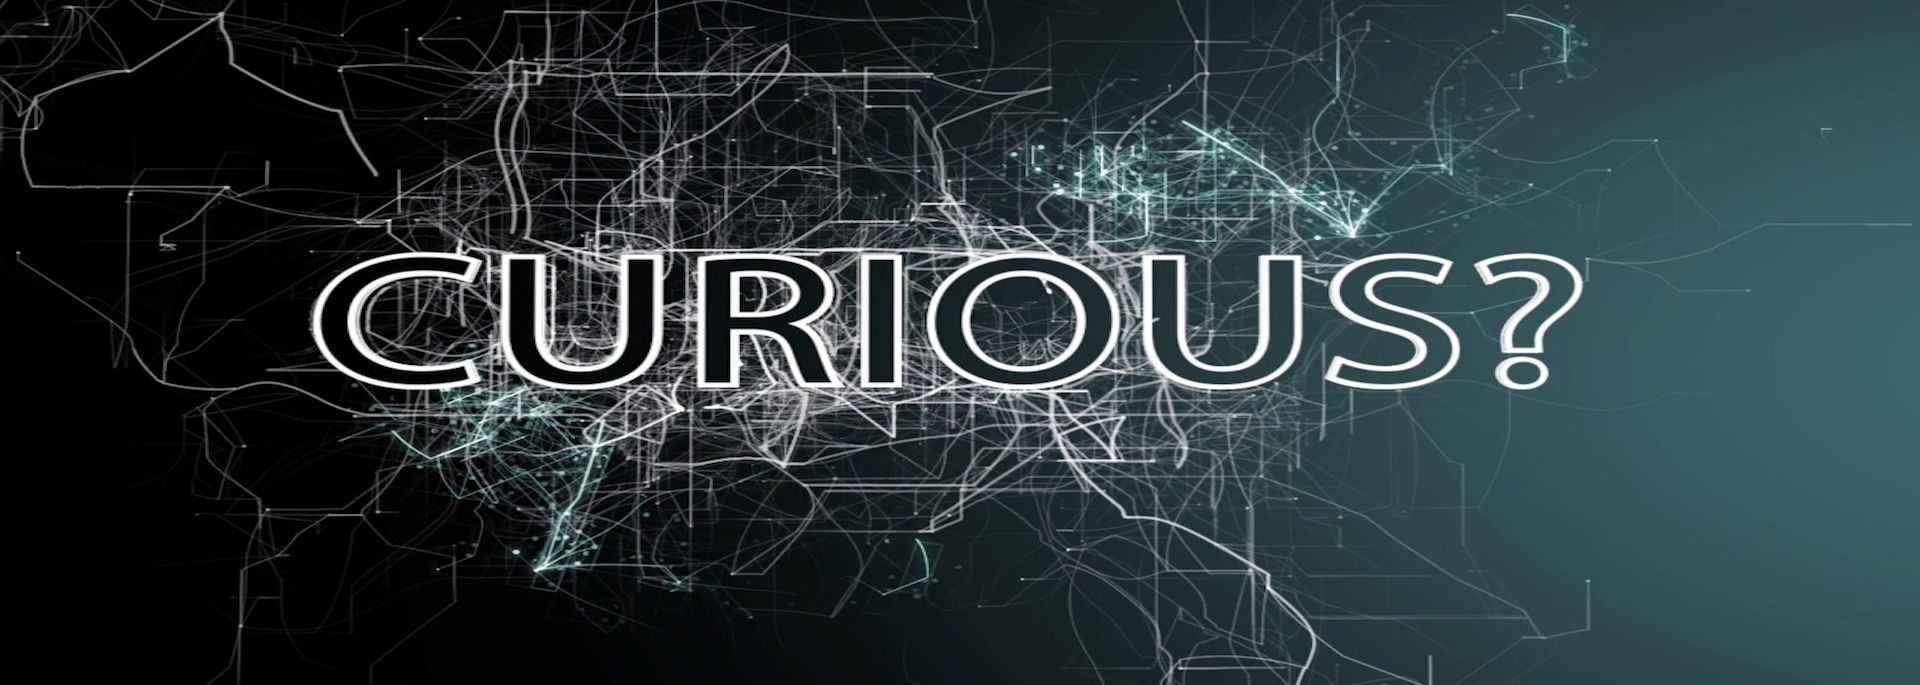 #CURIOUS channel